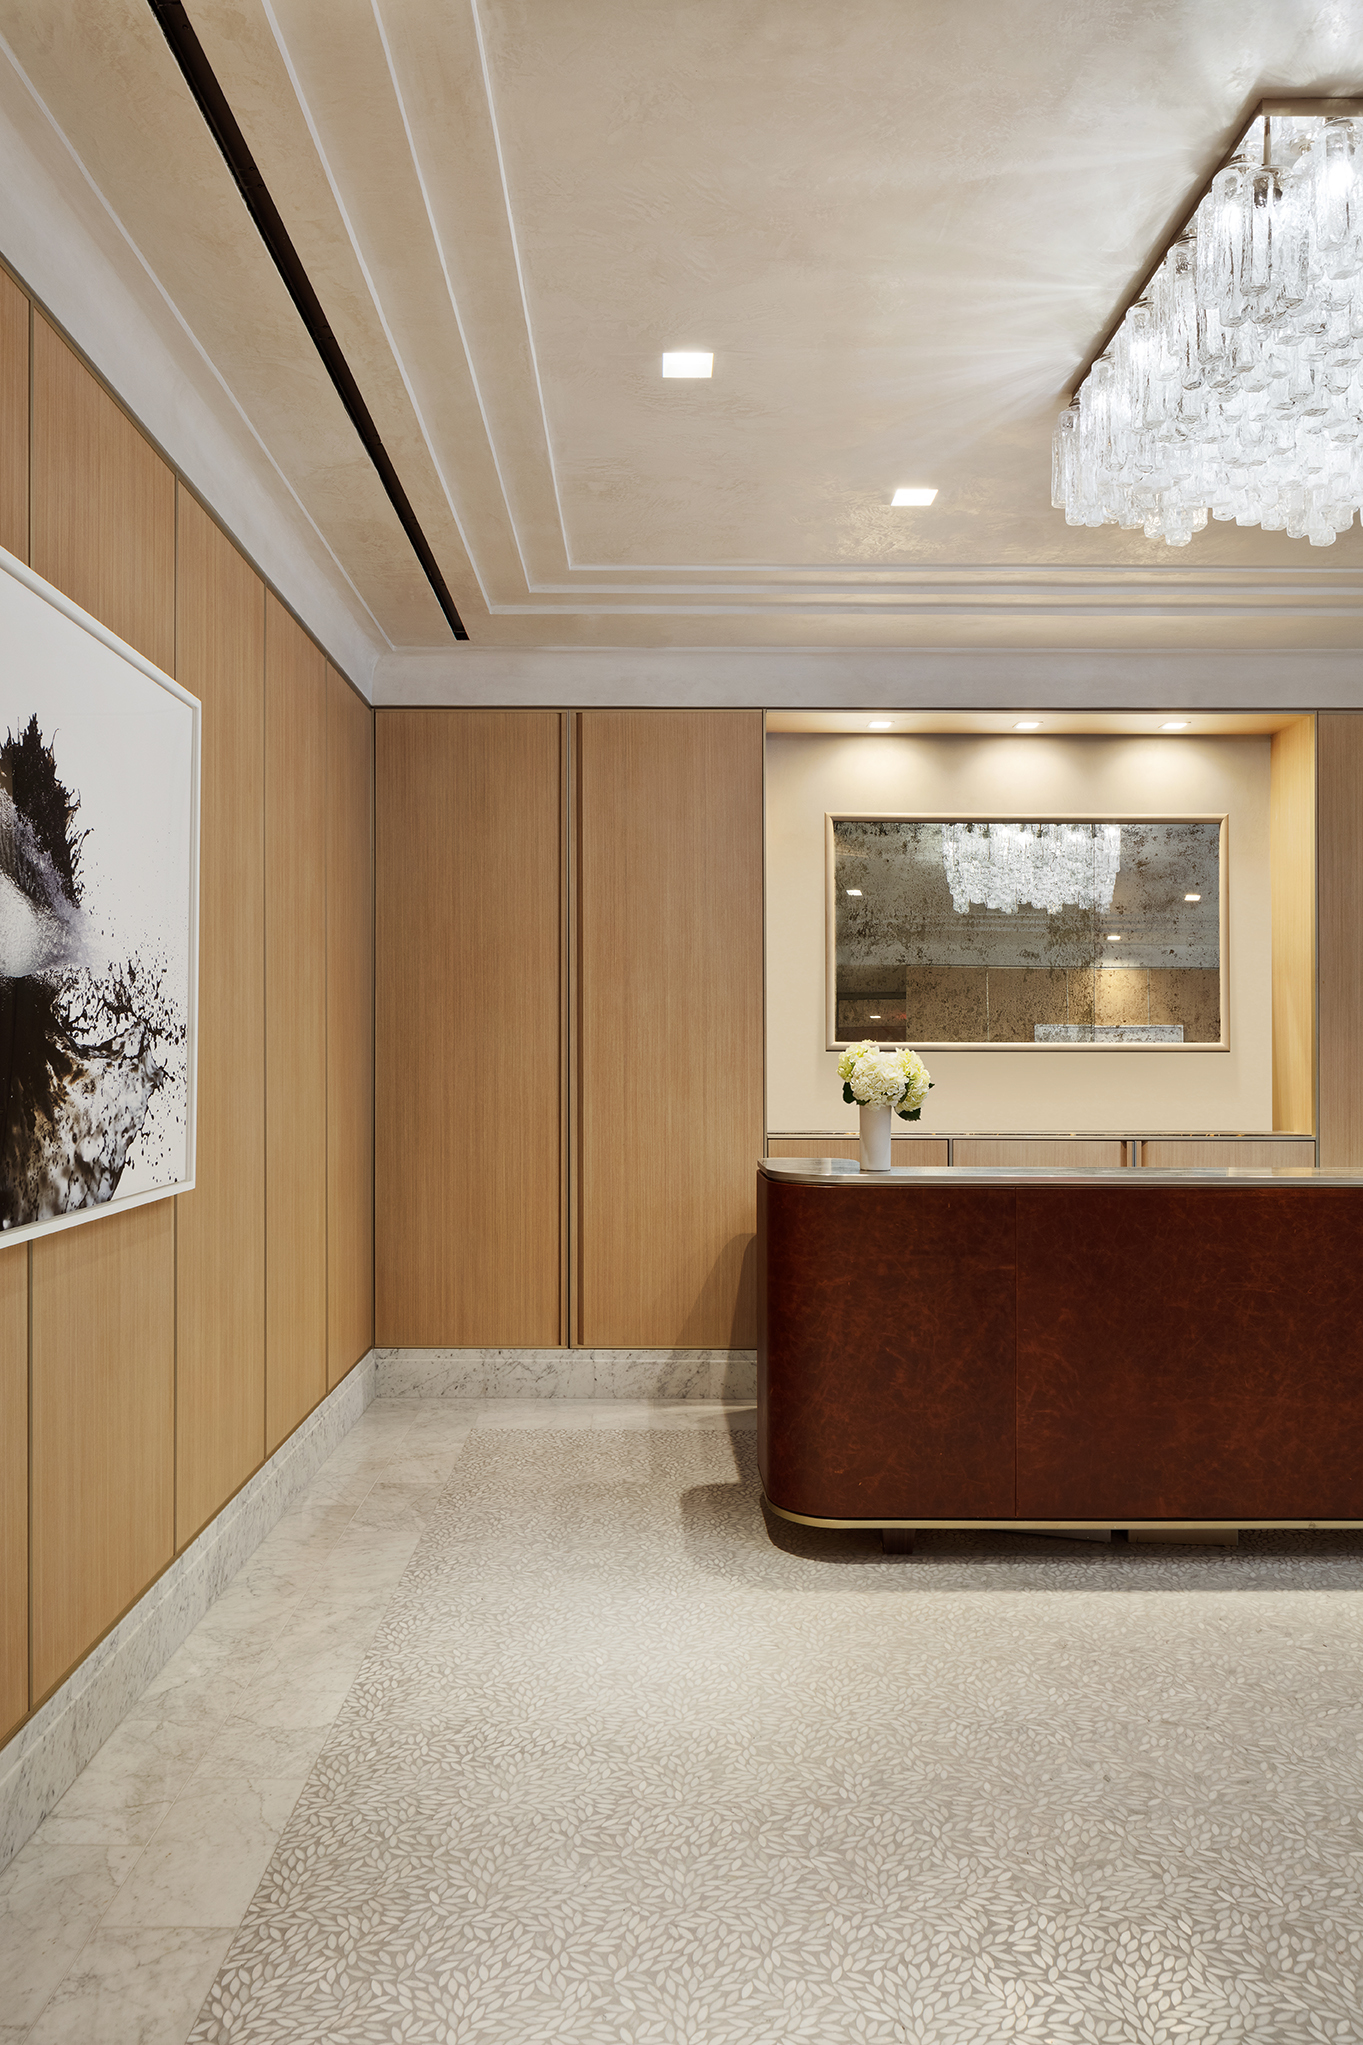 http://www.archdaily.com/916532/207-west-79th-street-apartments ...